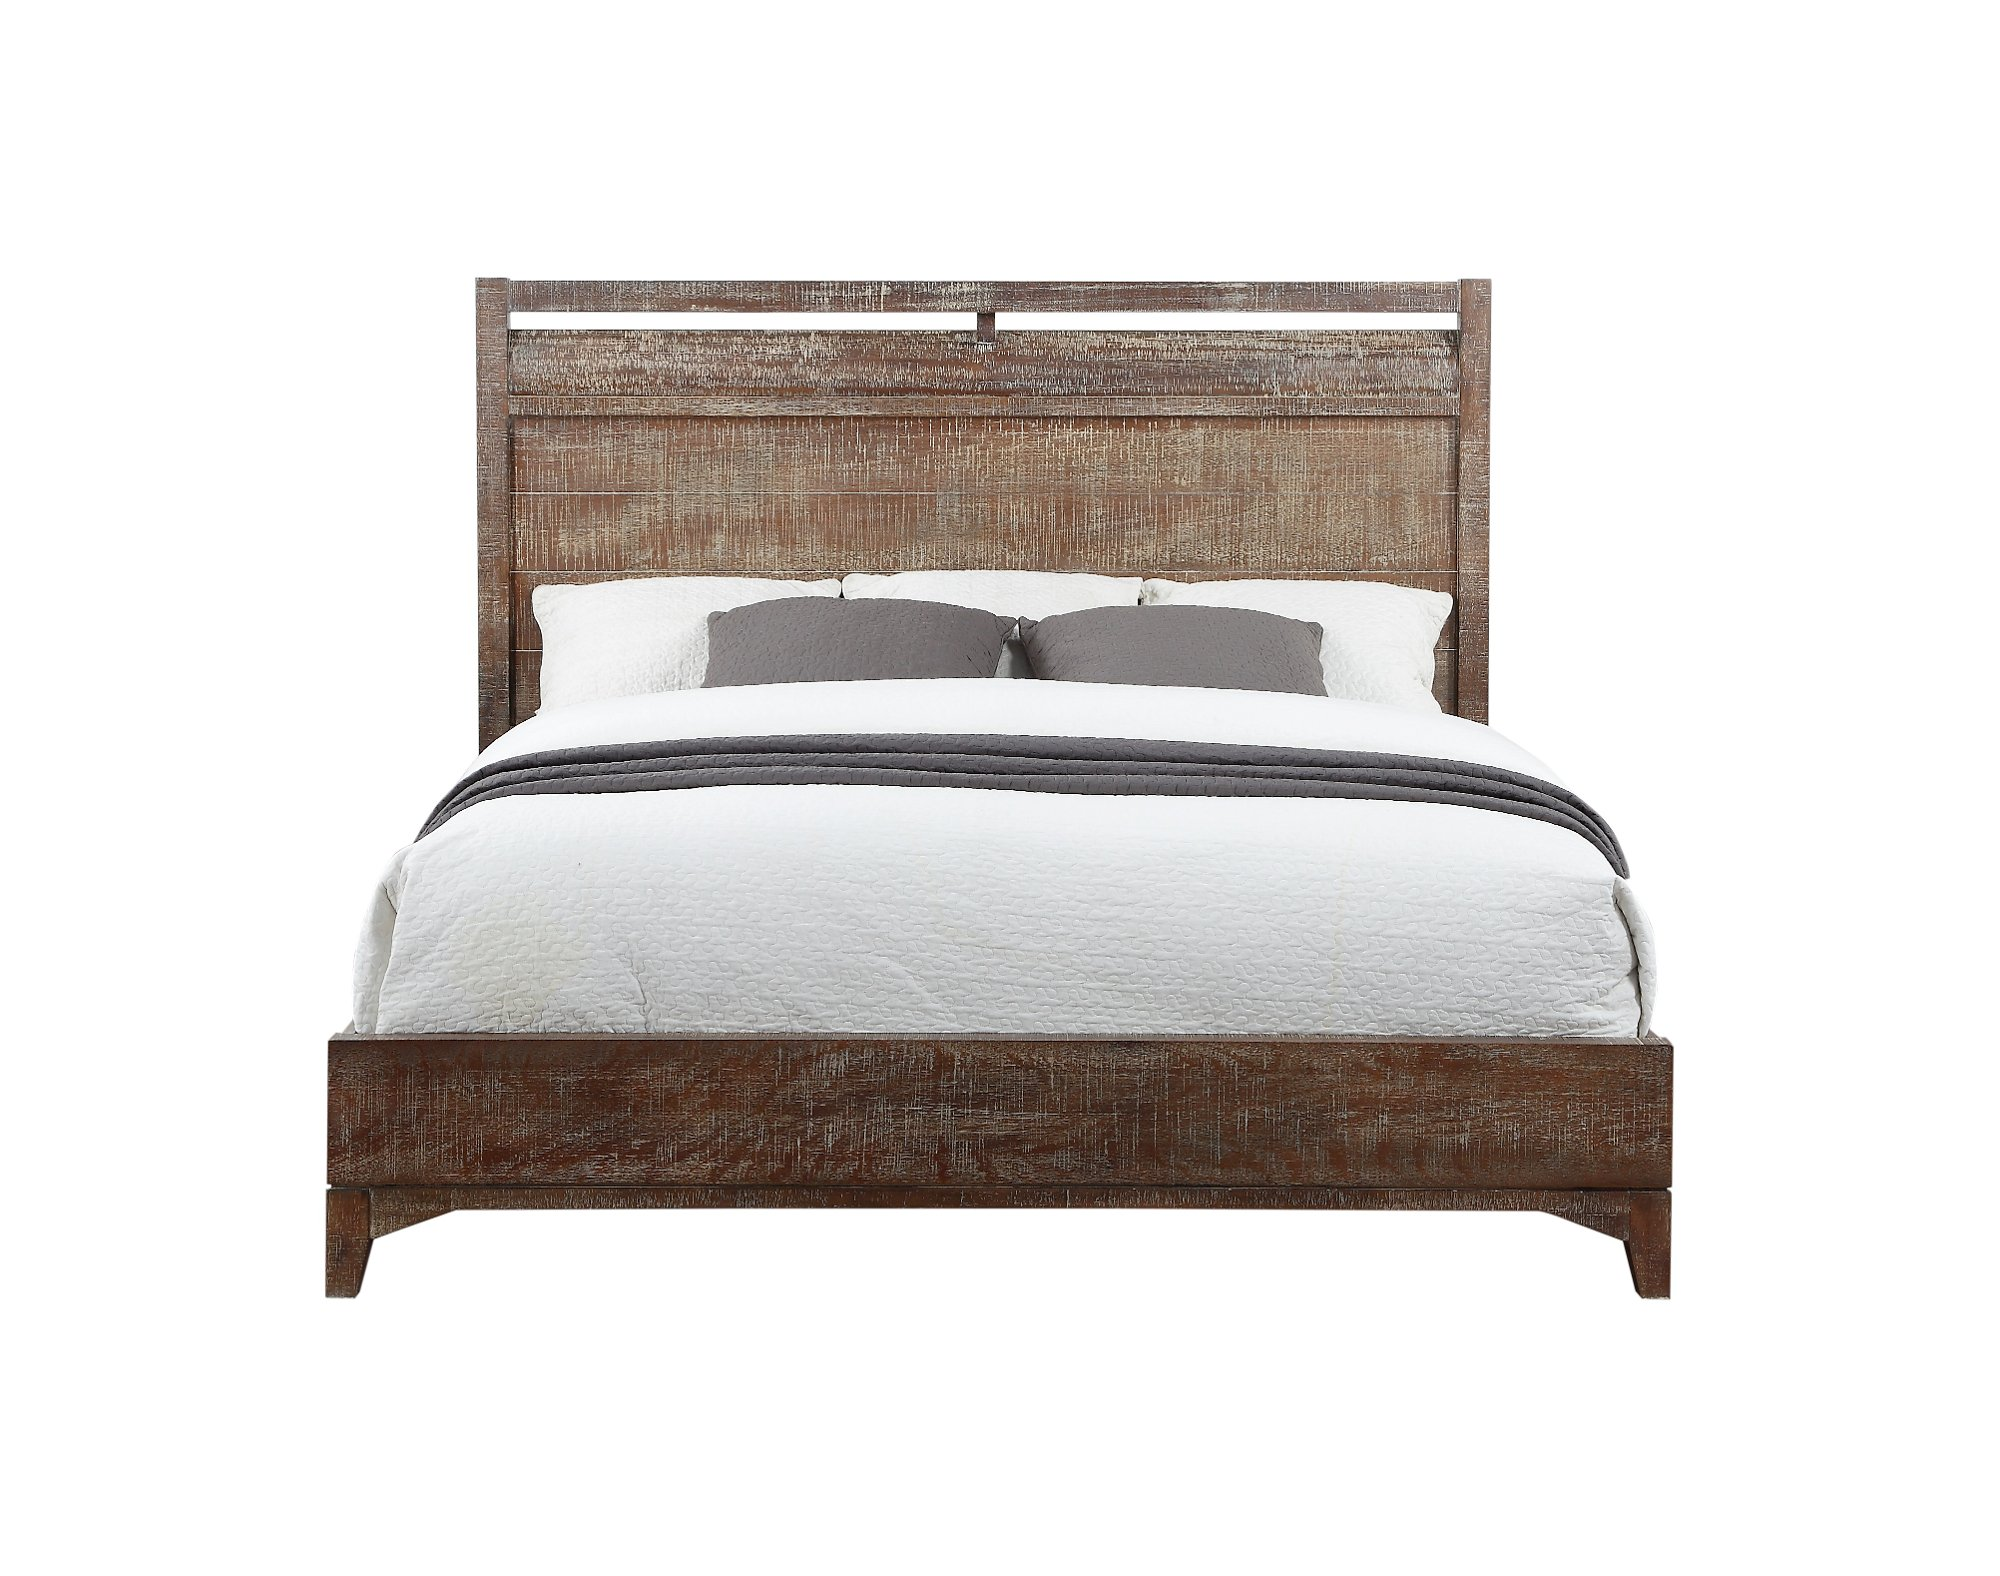 Rustic contemporary cocoa 6 piece queen bedroom set bohemian rc willey furniture store - Benefits of contemporary queen bed ...